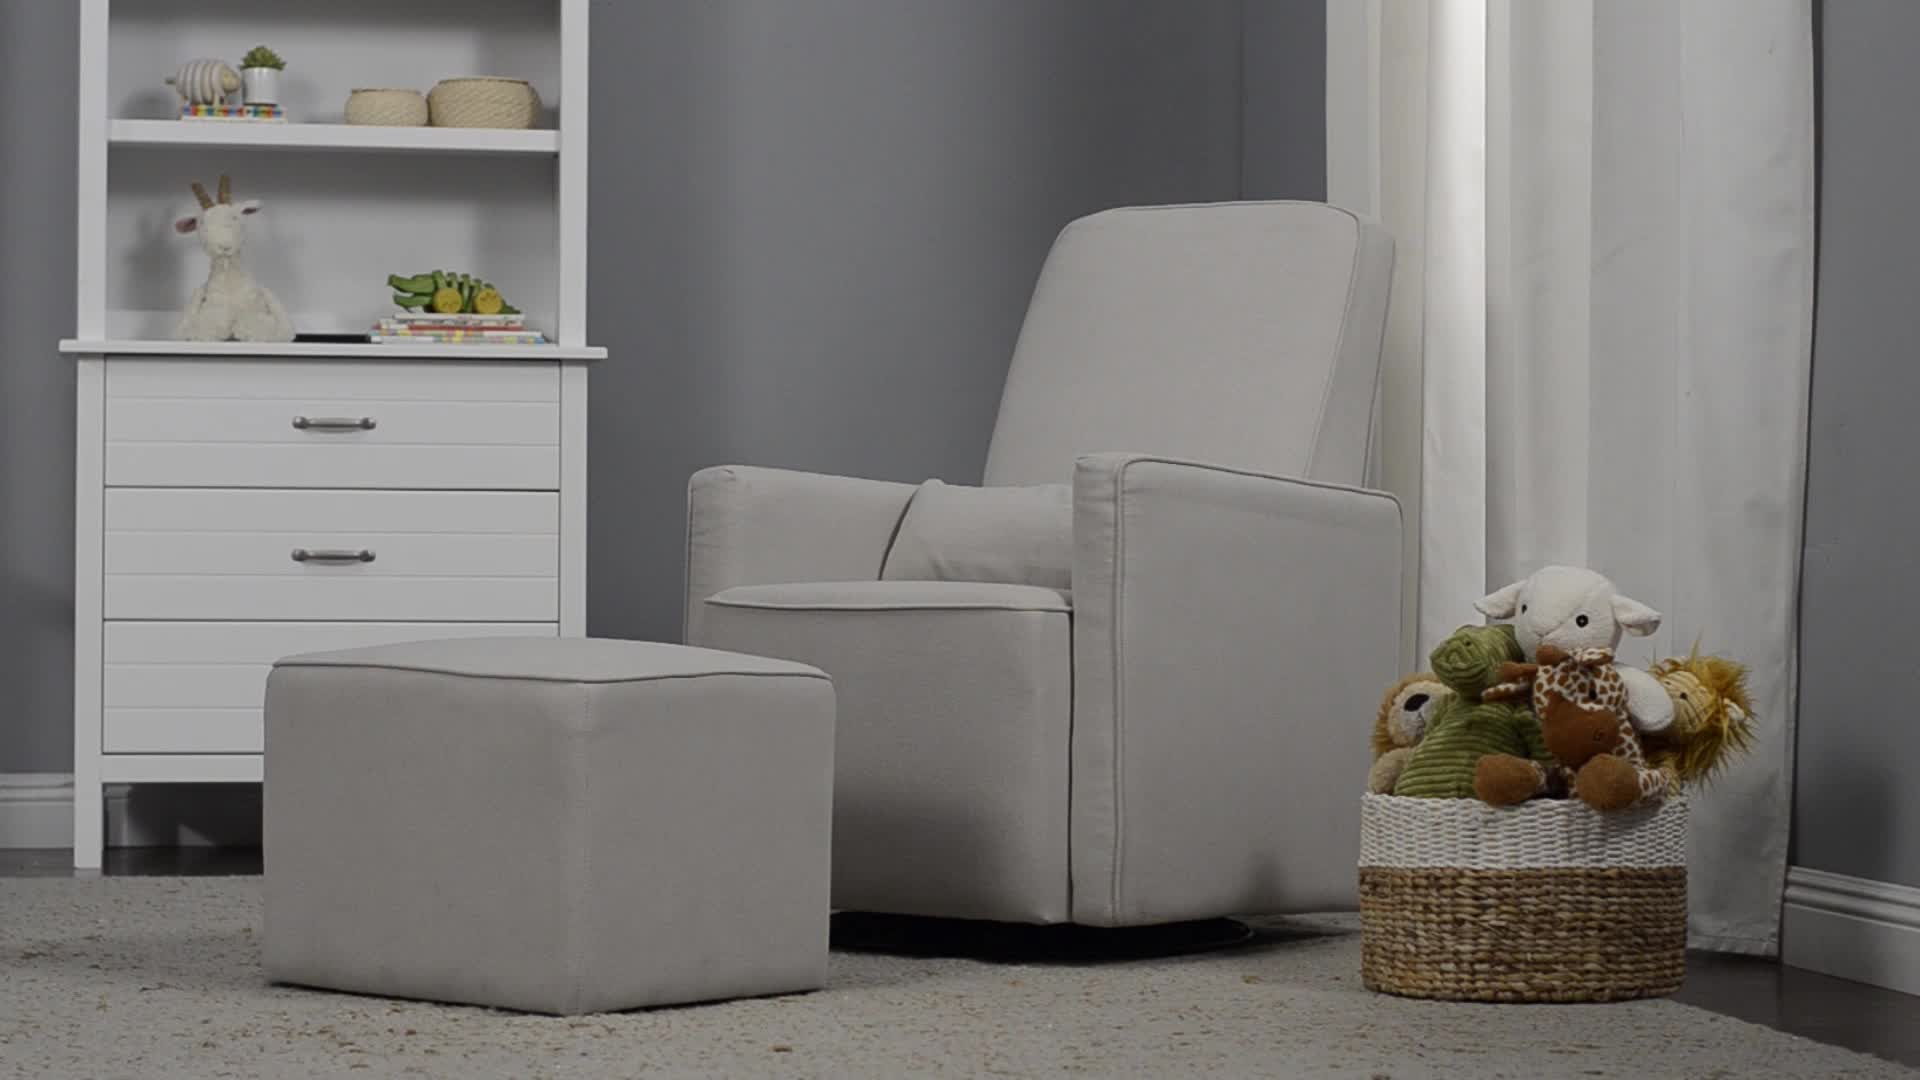 Watch The Video For DaVinci Olive Upholstered Swivel Glider And Ottoman In  Grey With Cream Piping